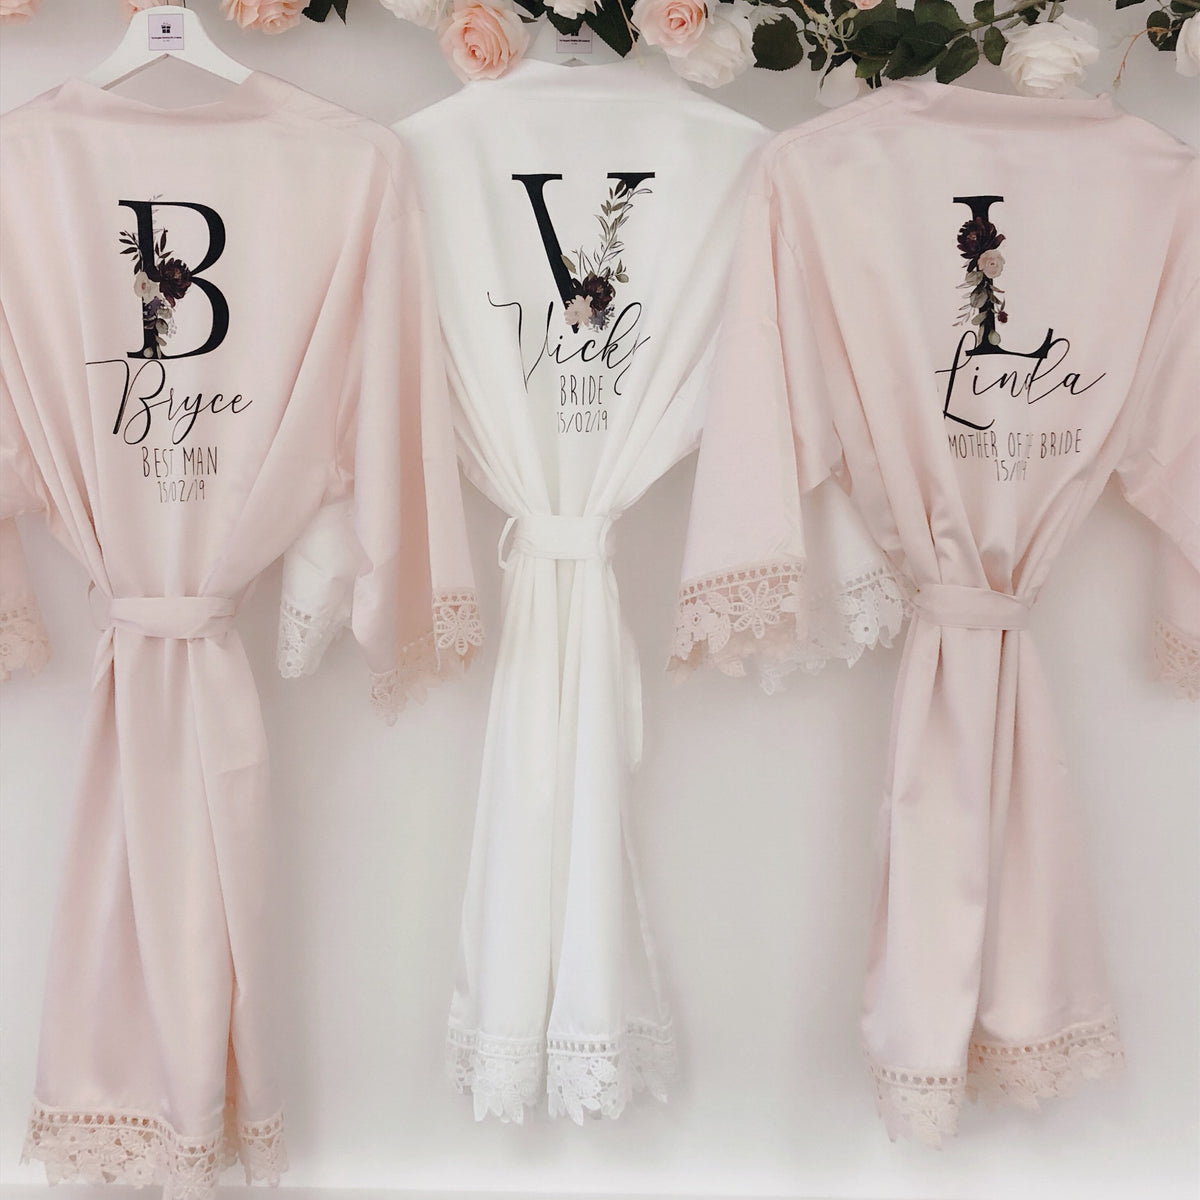 AMÉLIE PEARL robes with initials The Bespoke Wedding Gift Company